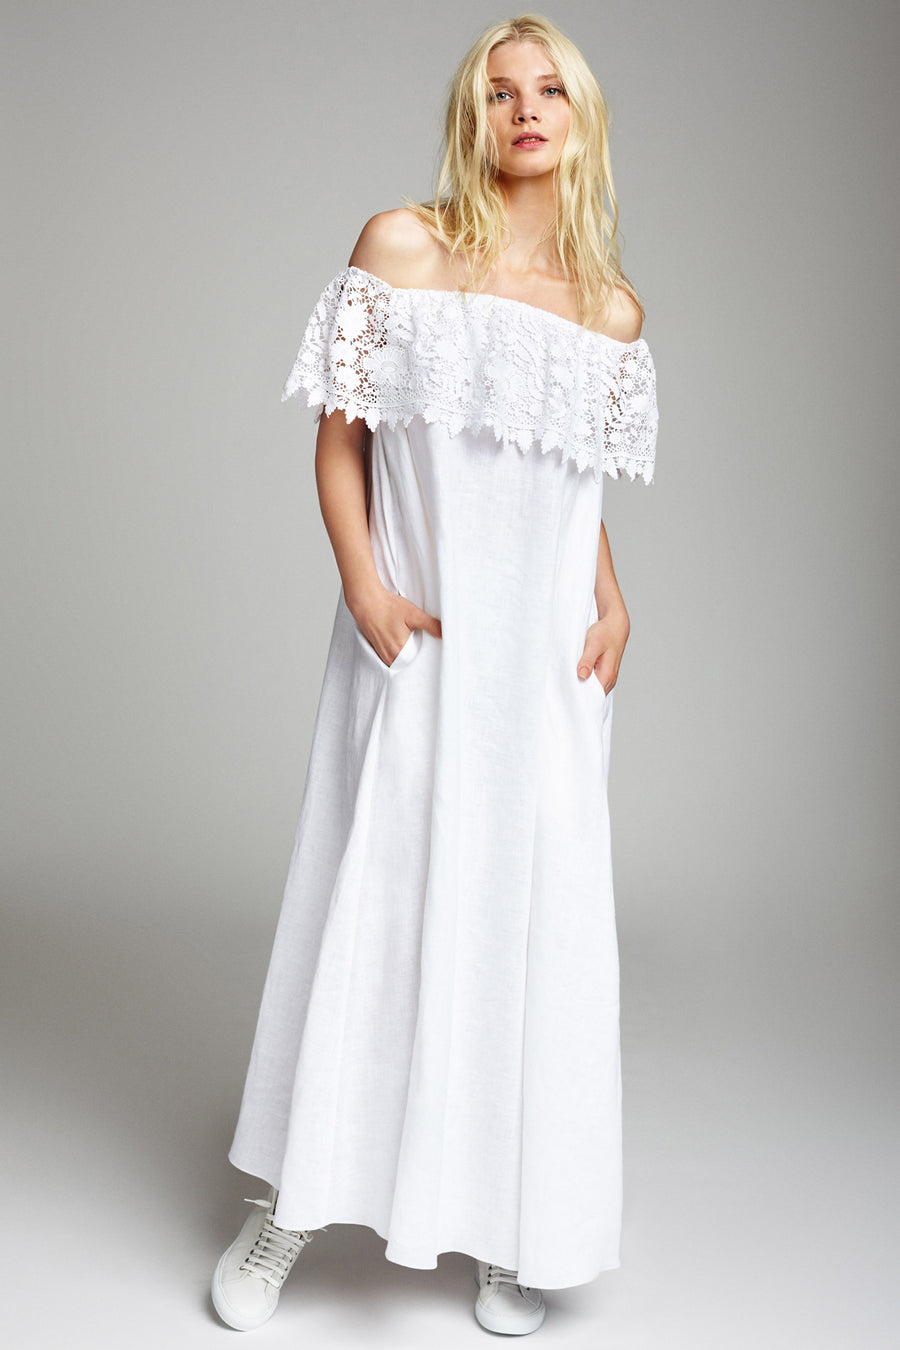 Angelina White Linen Dress - SAMPLE